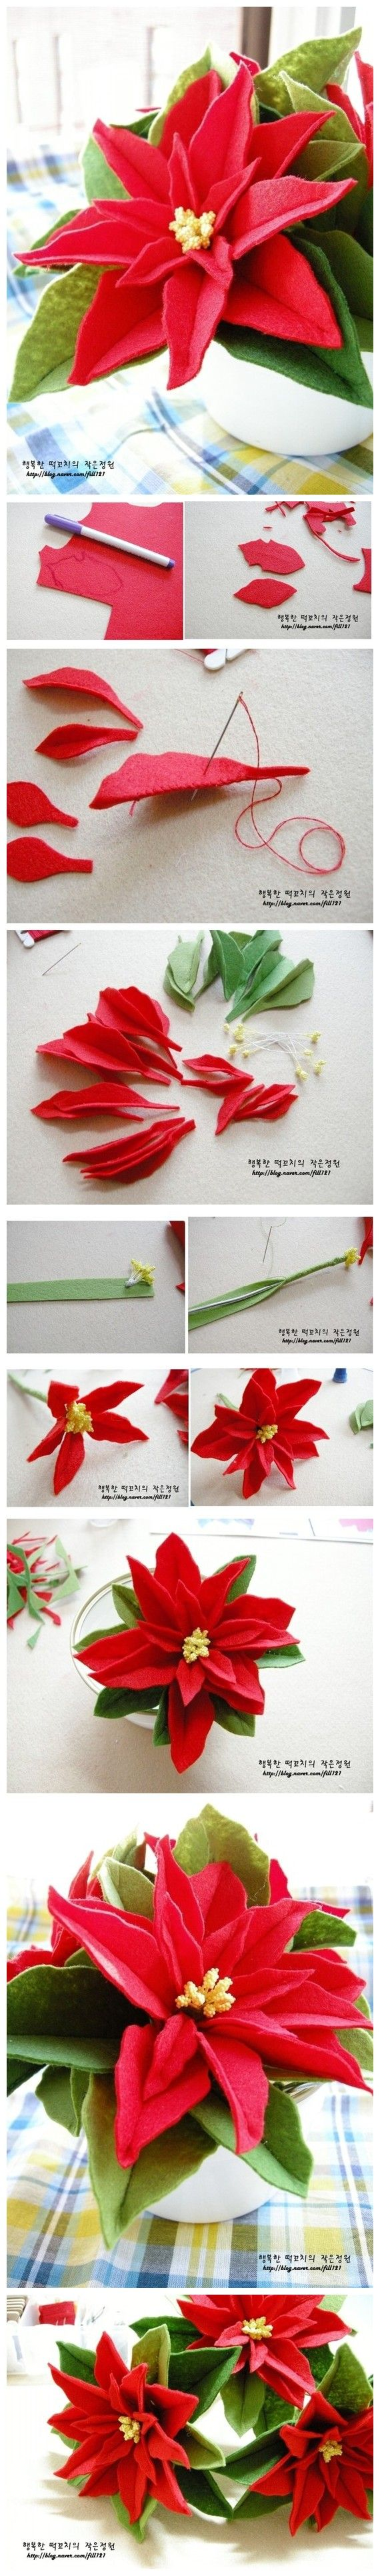 felt poinsettia tutorial _ #Christmas #Sewing Craft #DIY Holiday